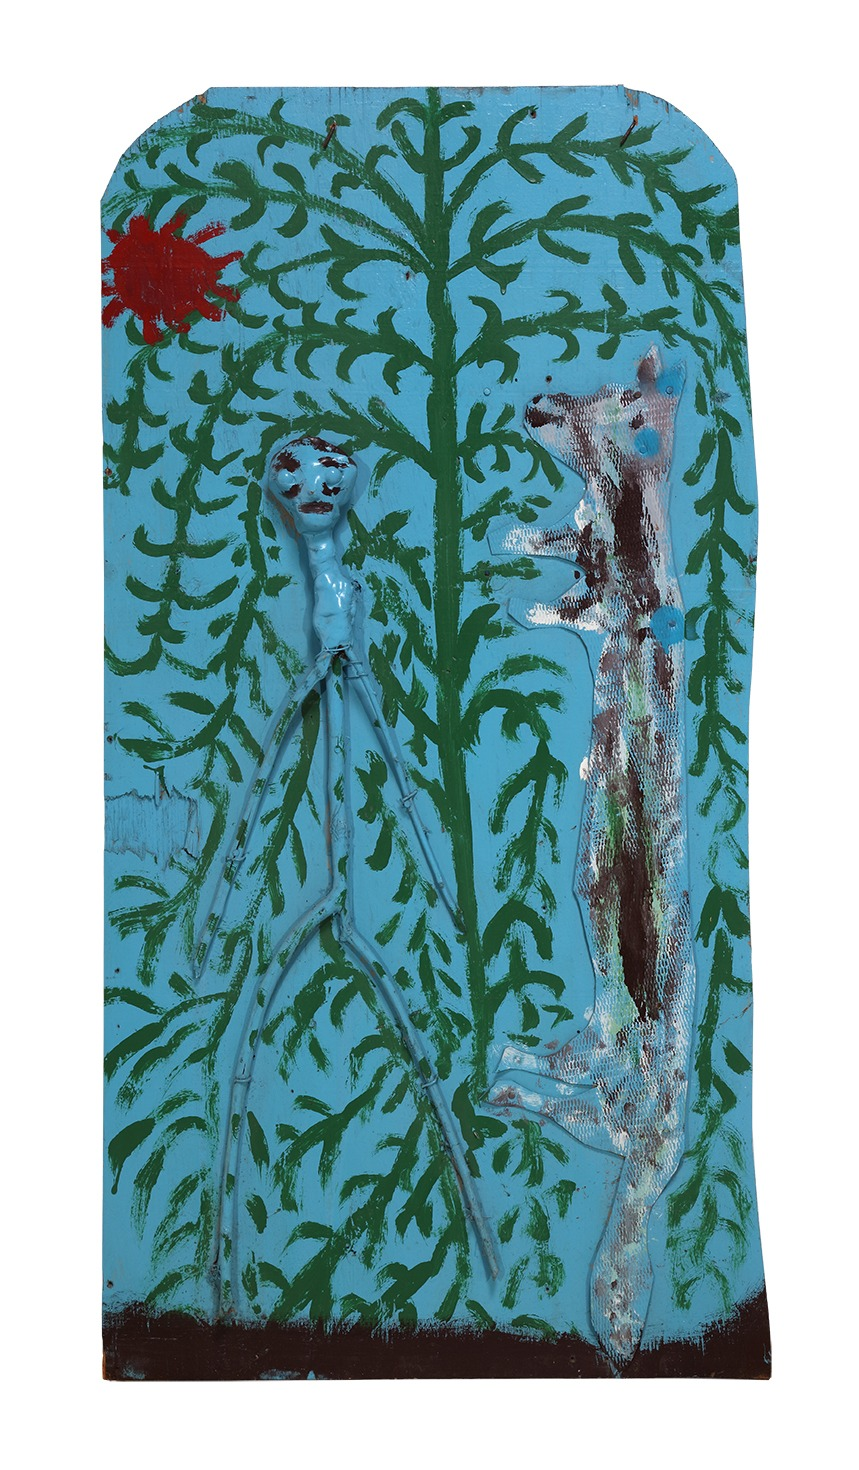 An untitled painting by Thornton Dial (Diptych, right), dated 1987.